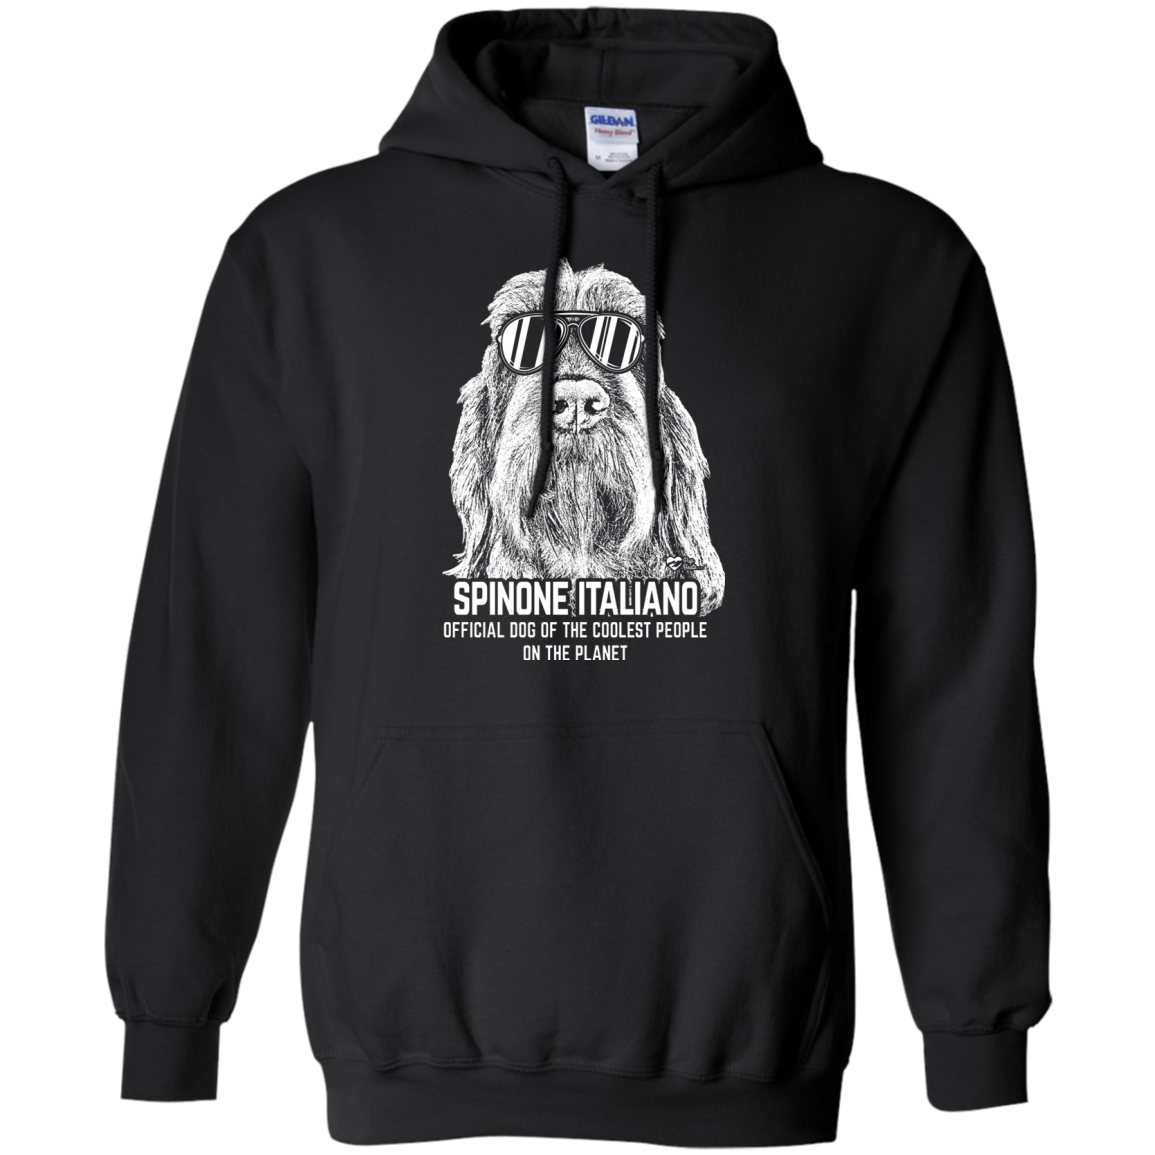 Official Dog Of The Coolest Spinone Italiano Hoodie